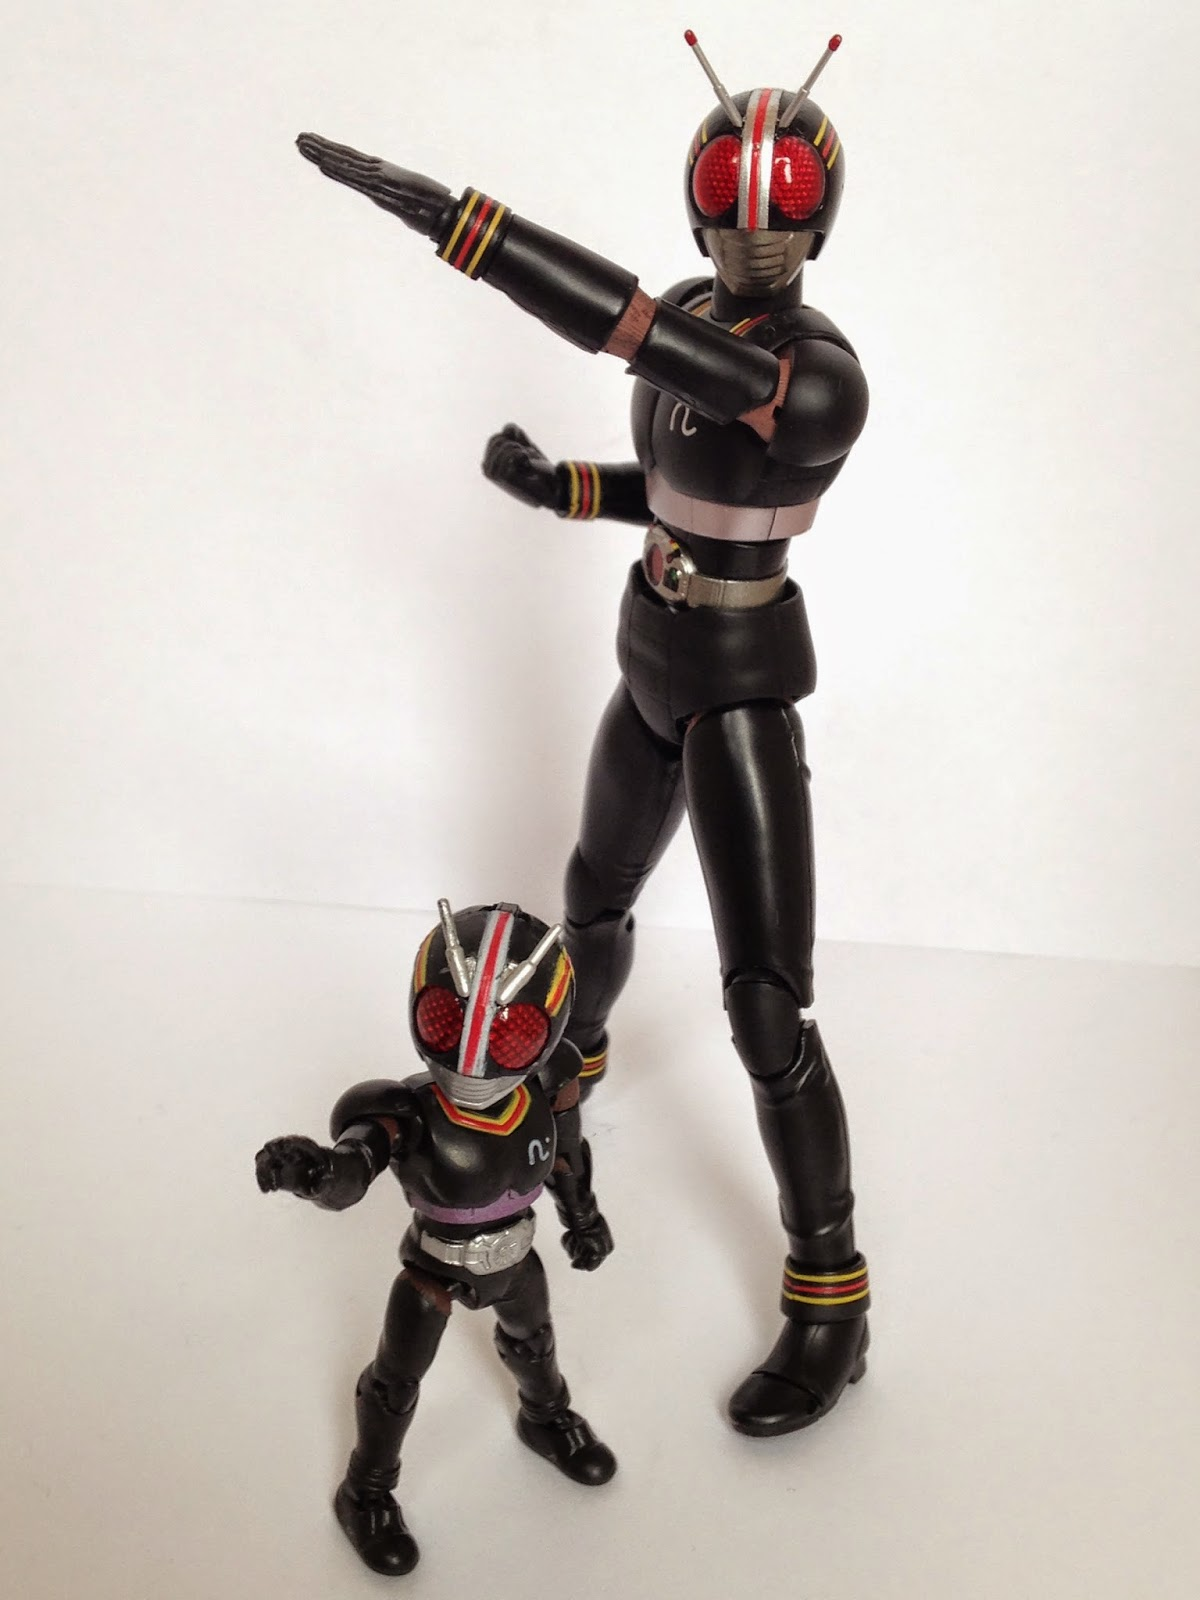 With Figuarts Black